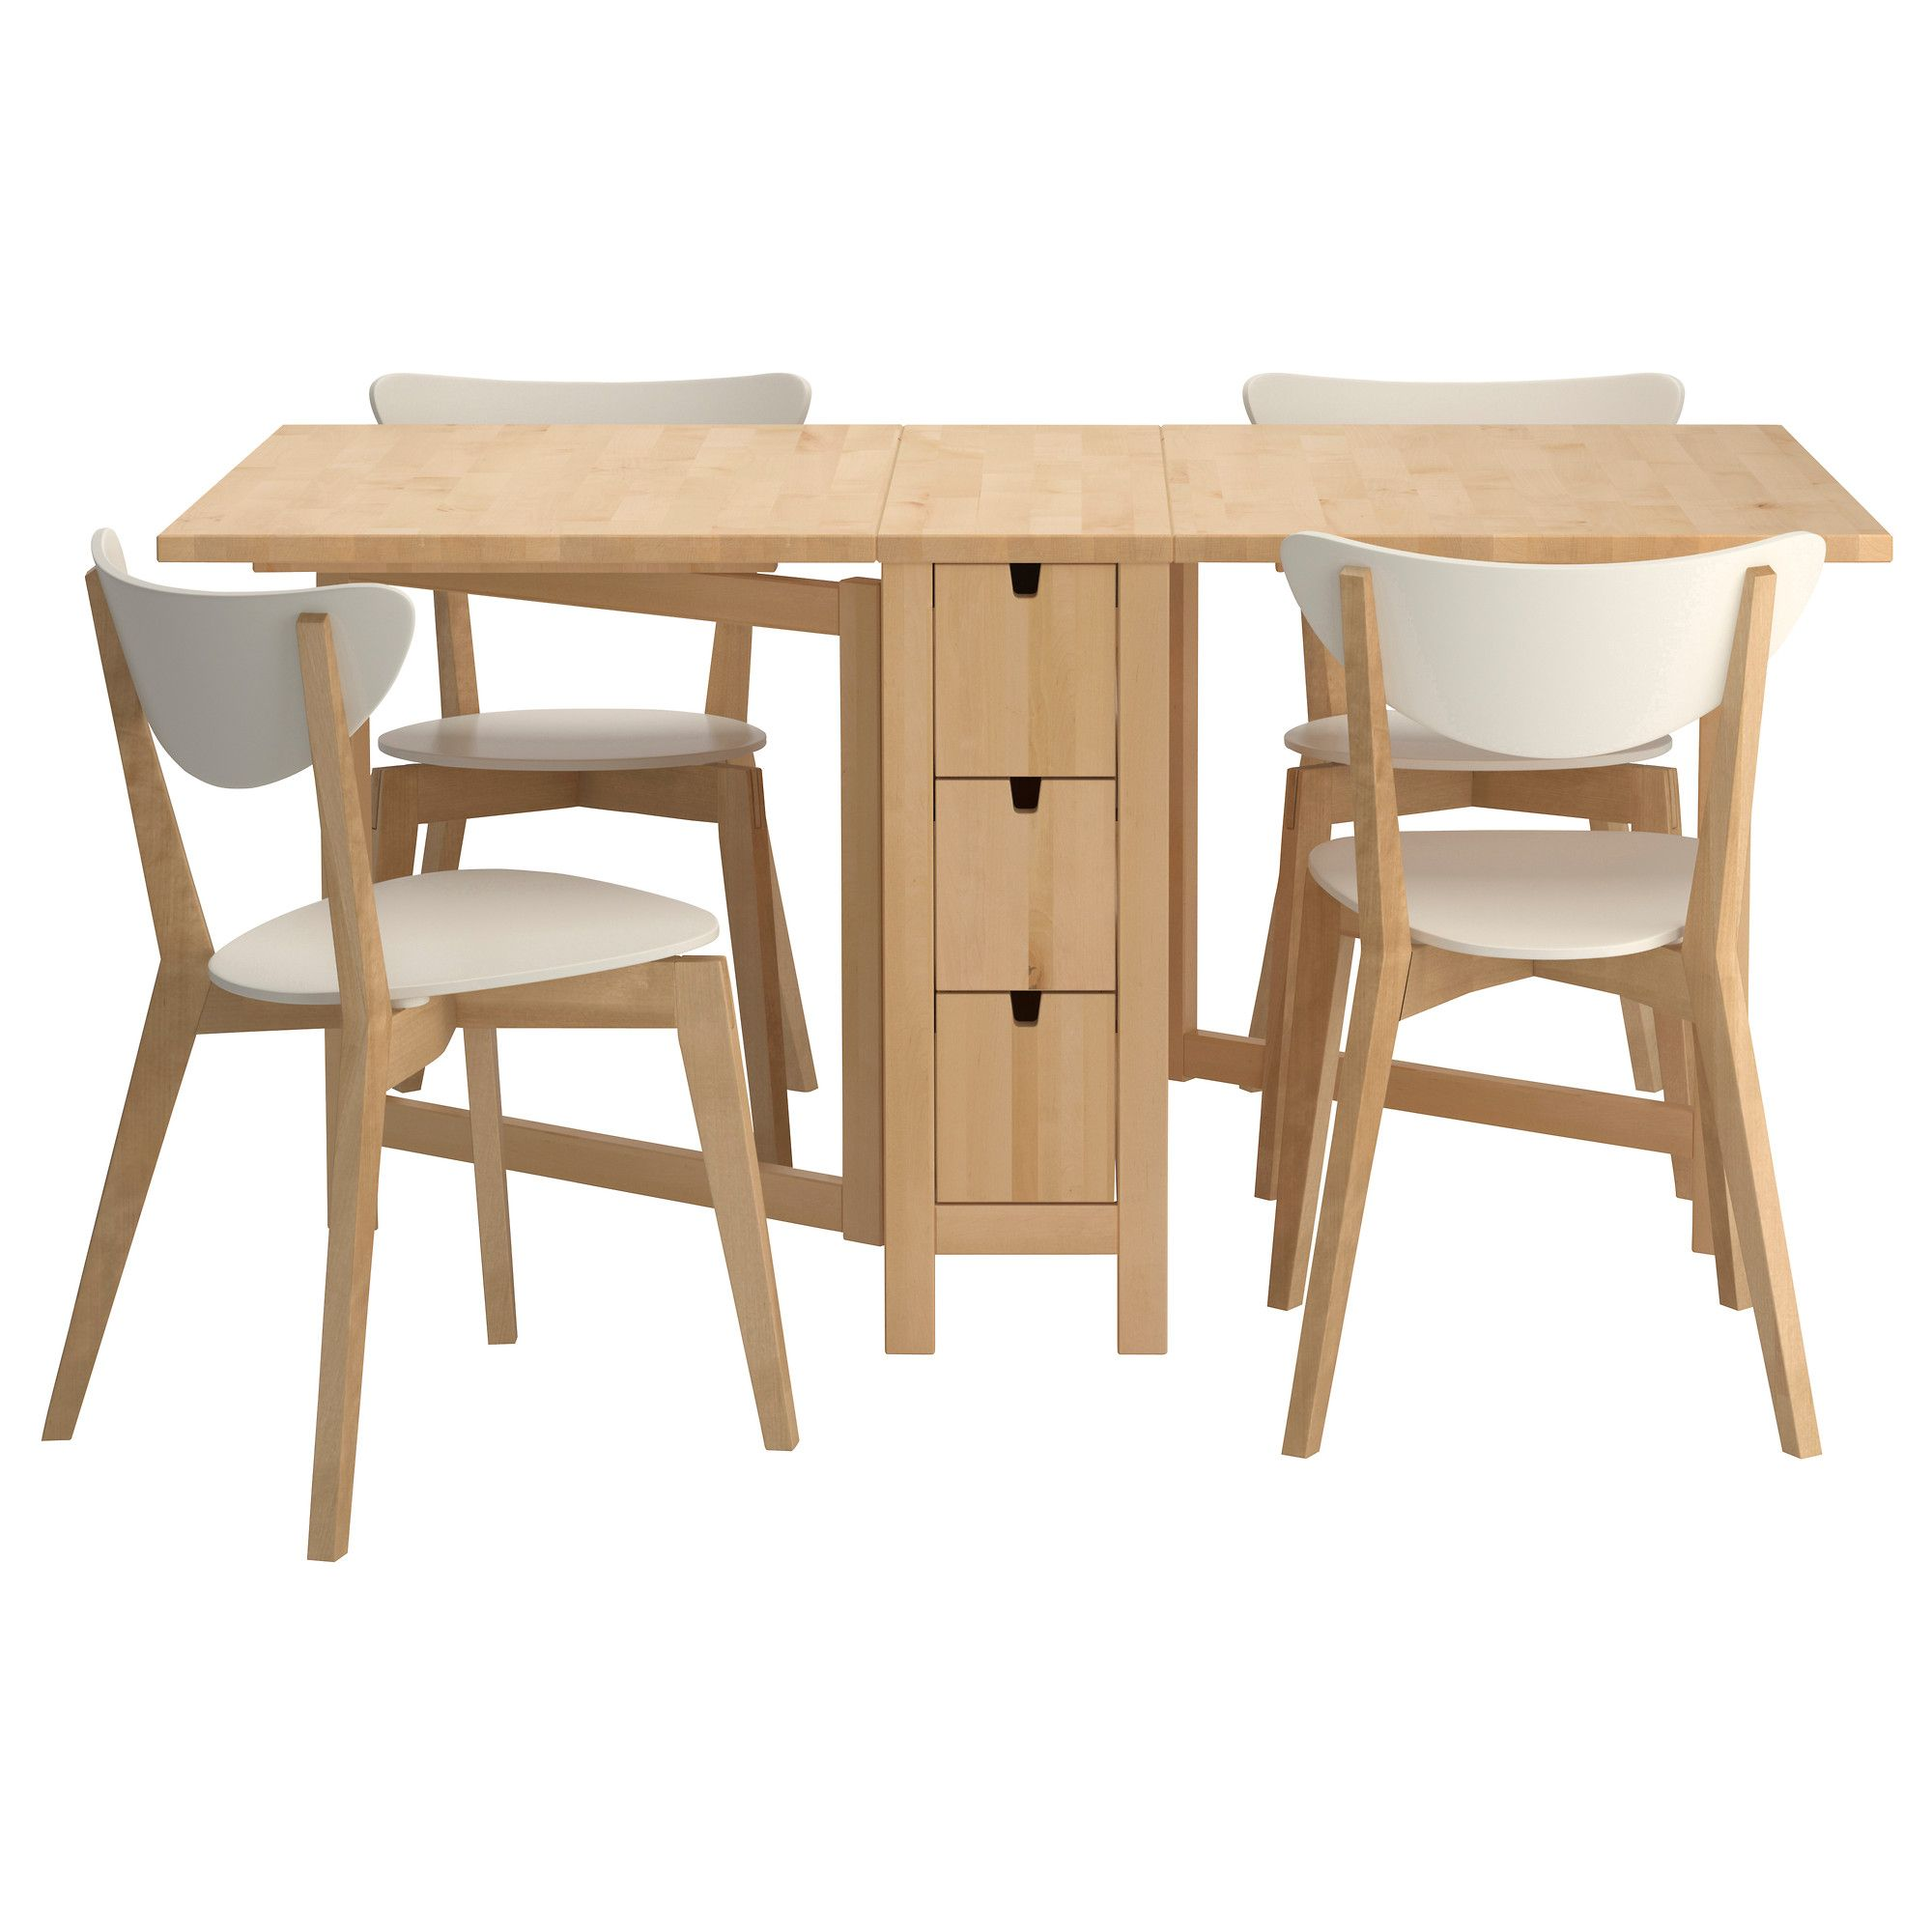 Norden nordmyra table and 4 chairs ikea for the love for White dining table ideas